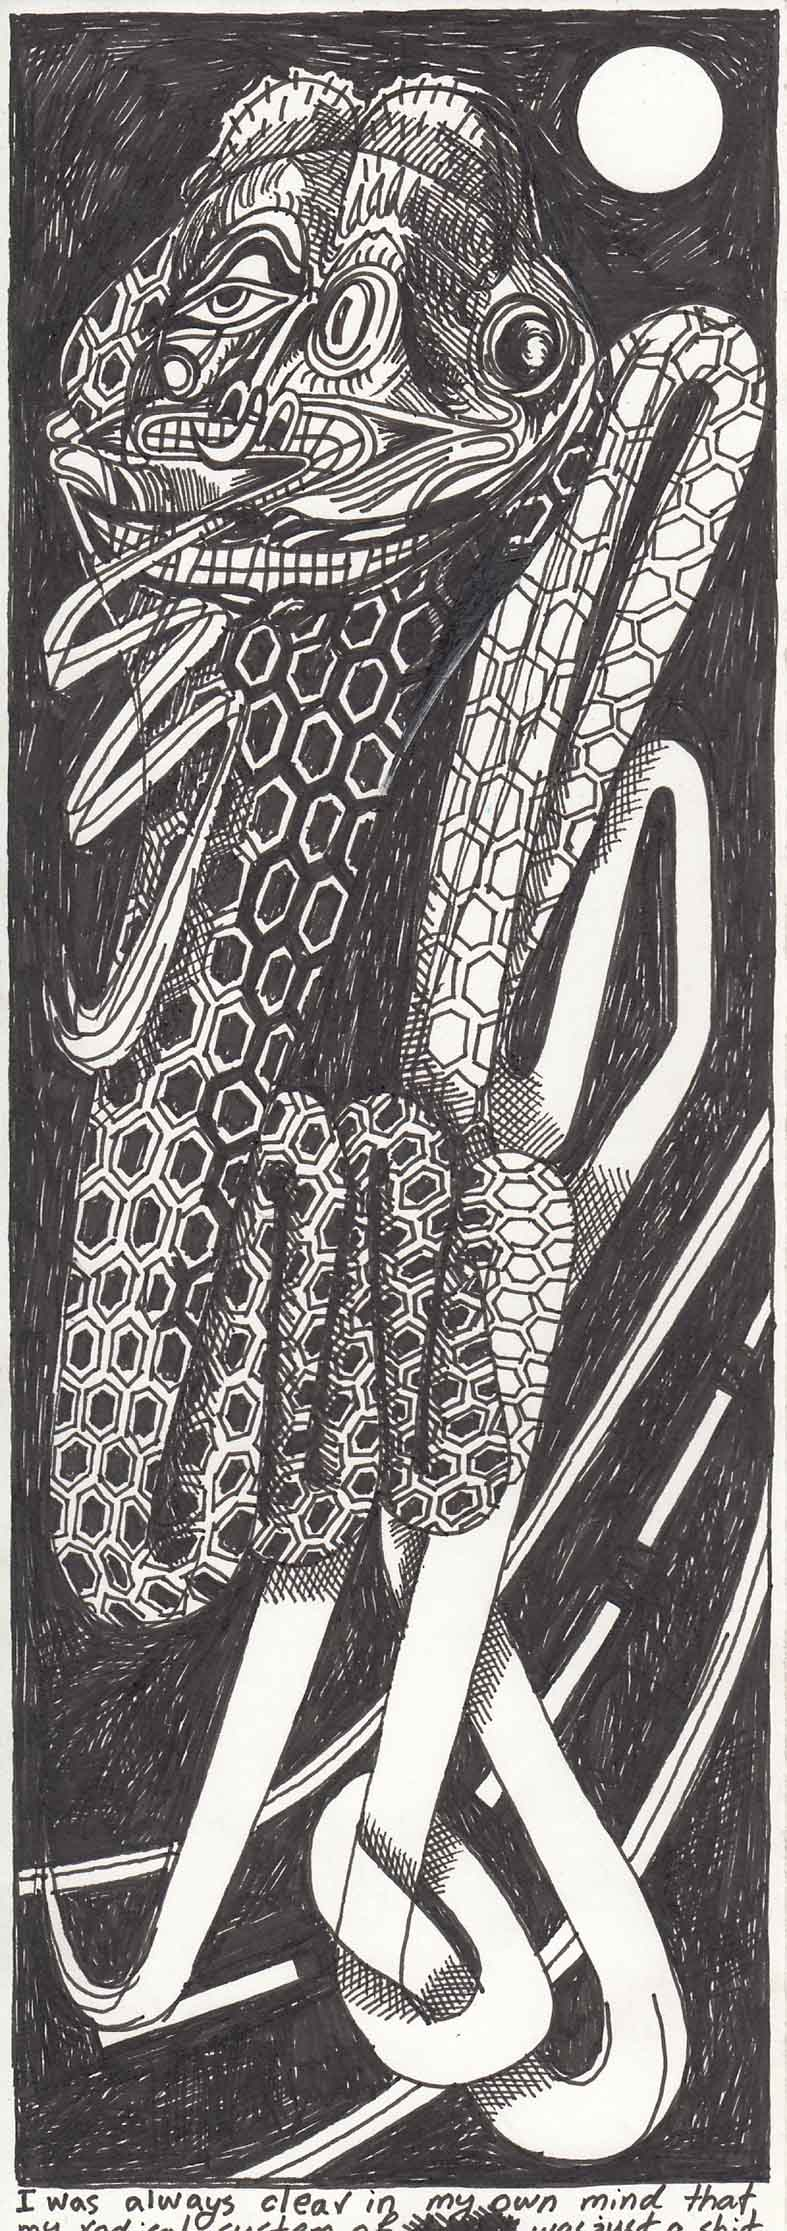 Pink punk kirtle, 2017, Drawing ink pen on paper, 10.5 x 29.5 cm